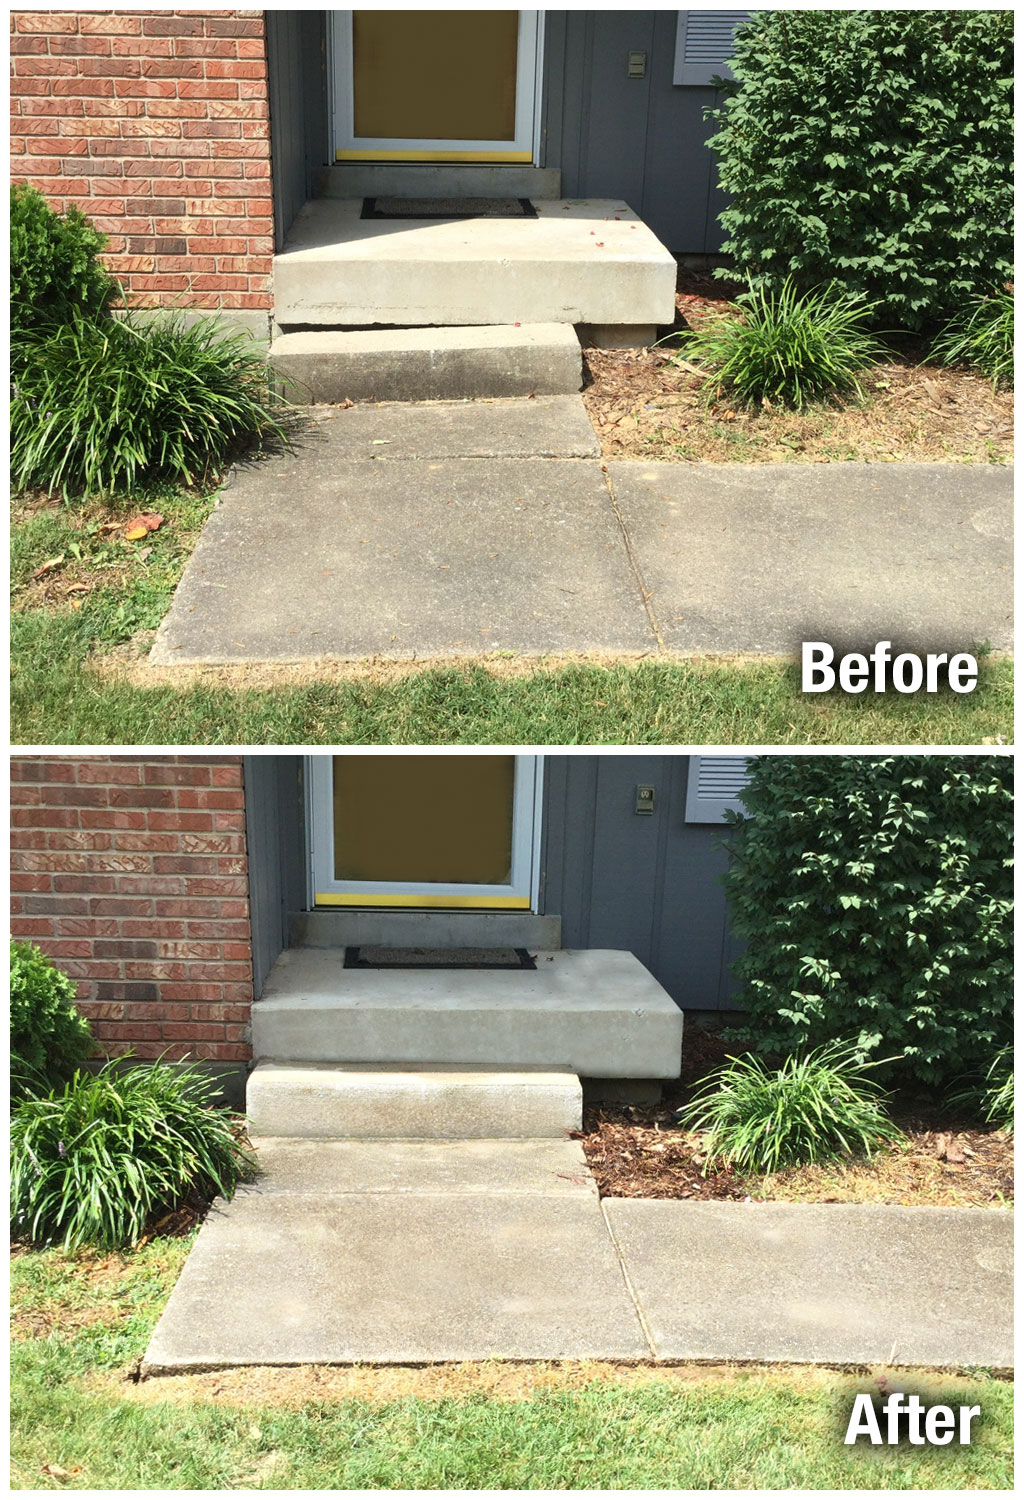 A-1 Concrete Leveling Colorado Springs Steps Leveling